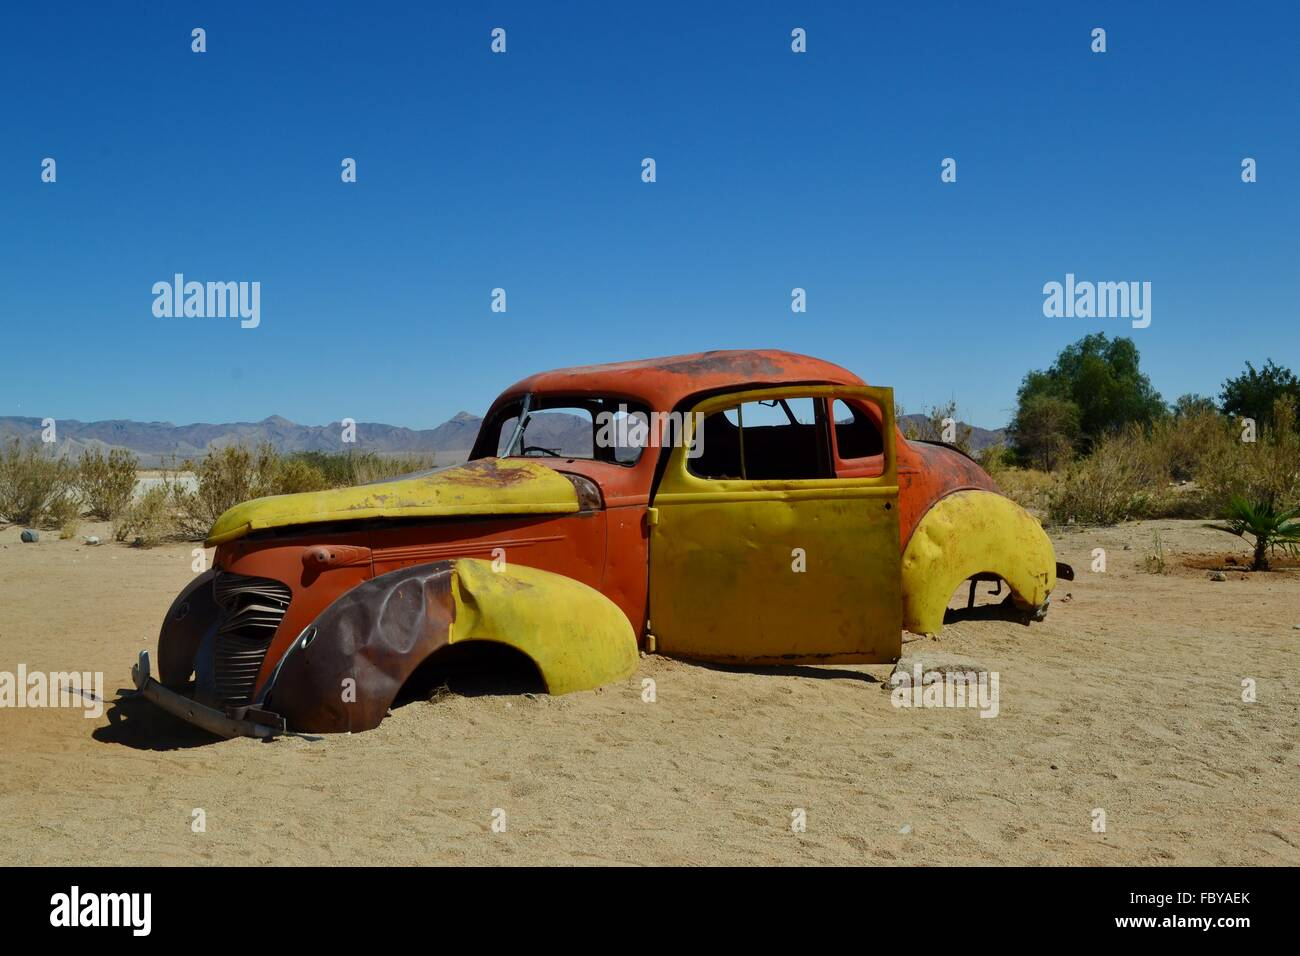 Abandoned, rusting and broken down old car in a desert - Stock Image